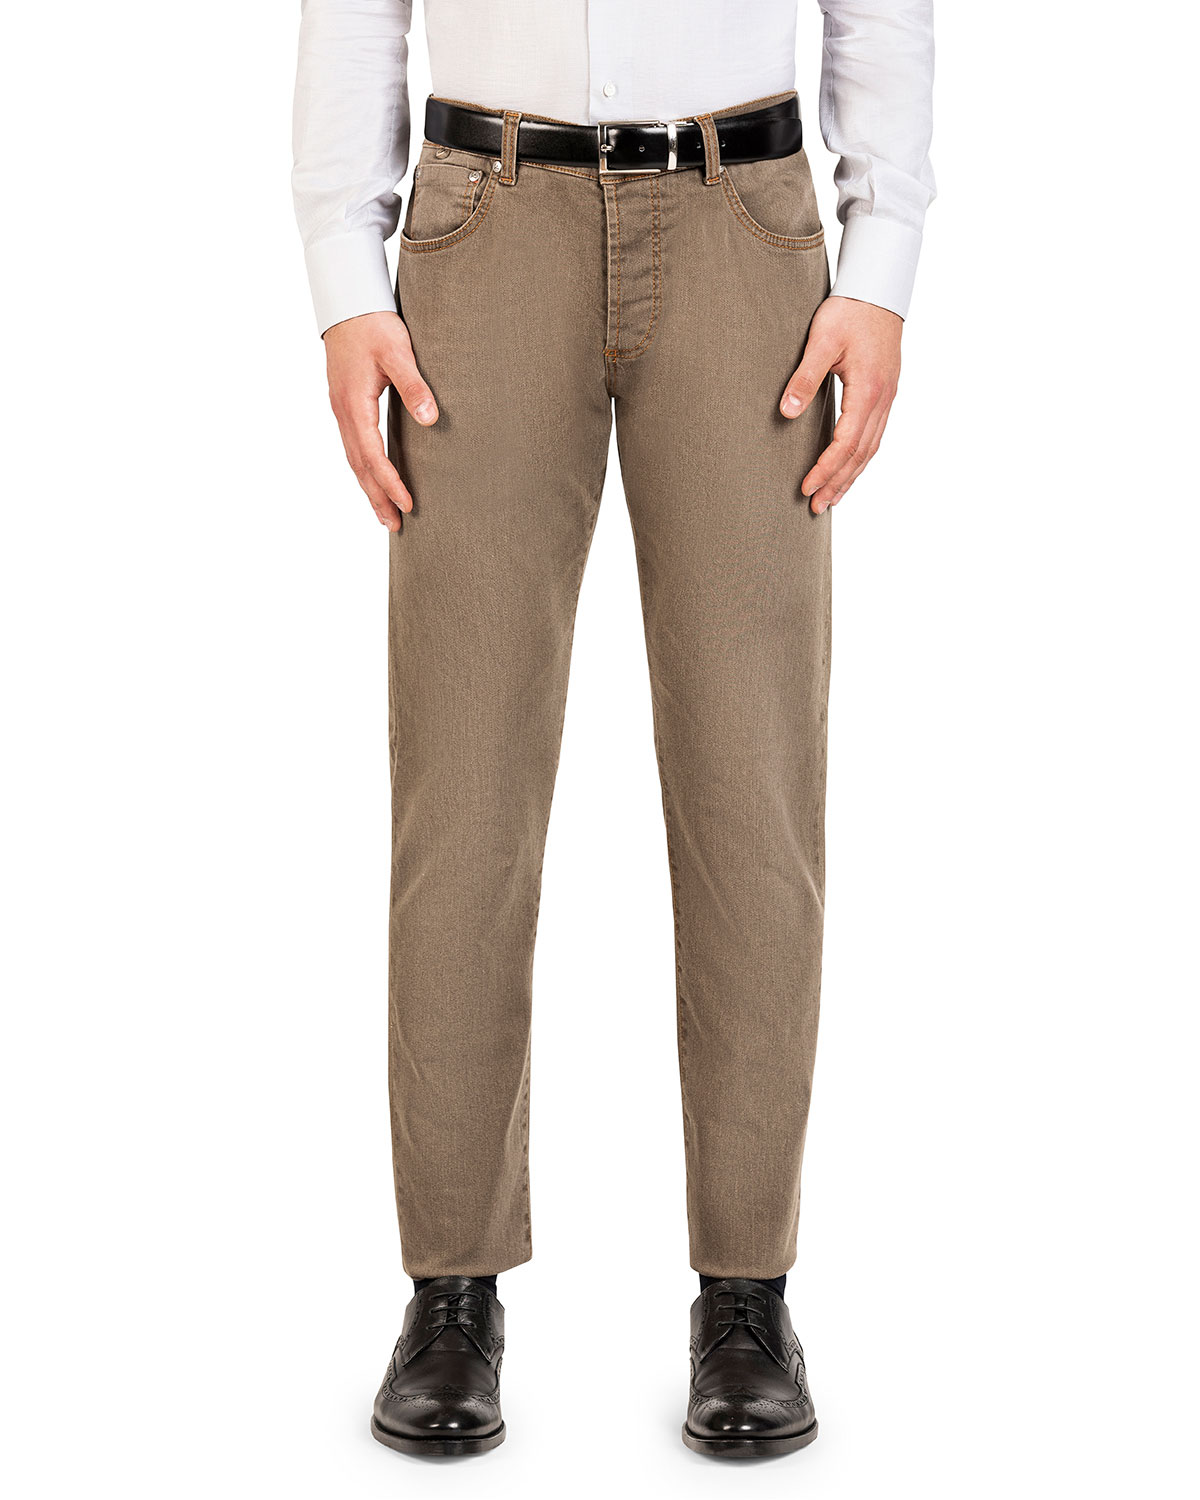 Isaia Jeans MEN'S STRAIGHT-LEG WASHED DENIM JEANS, LIGHT BROWN